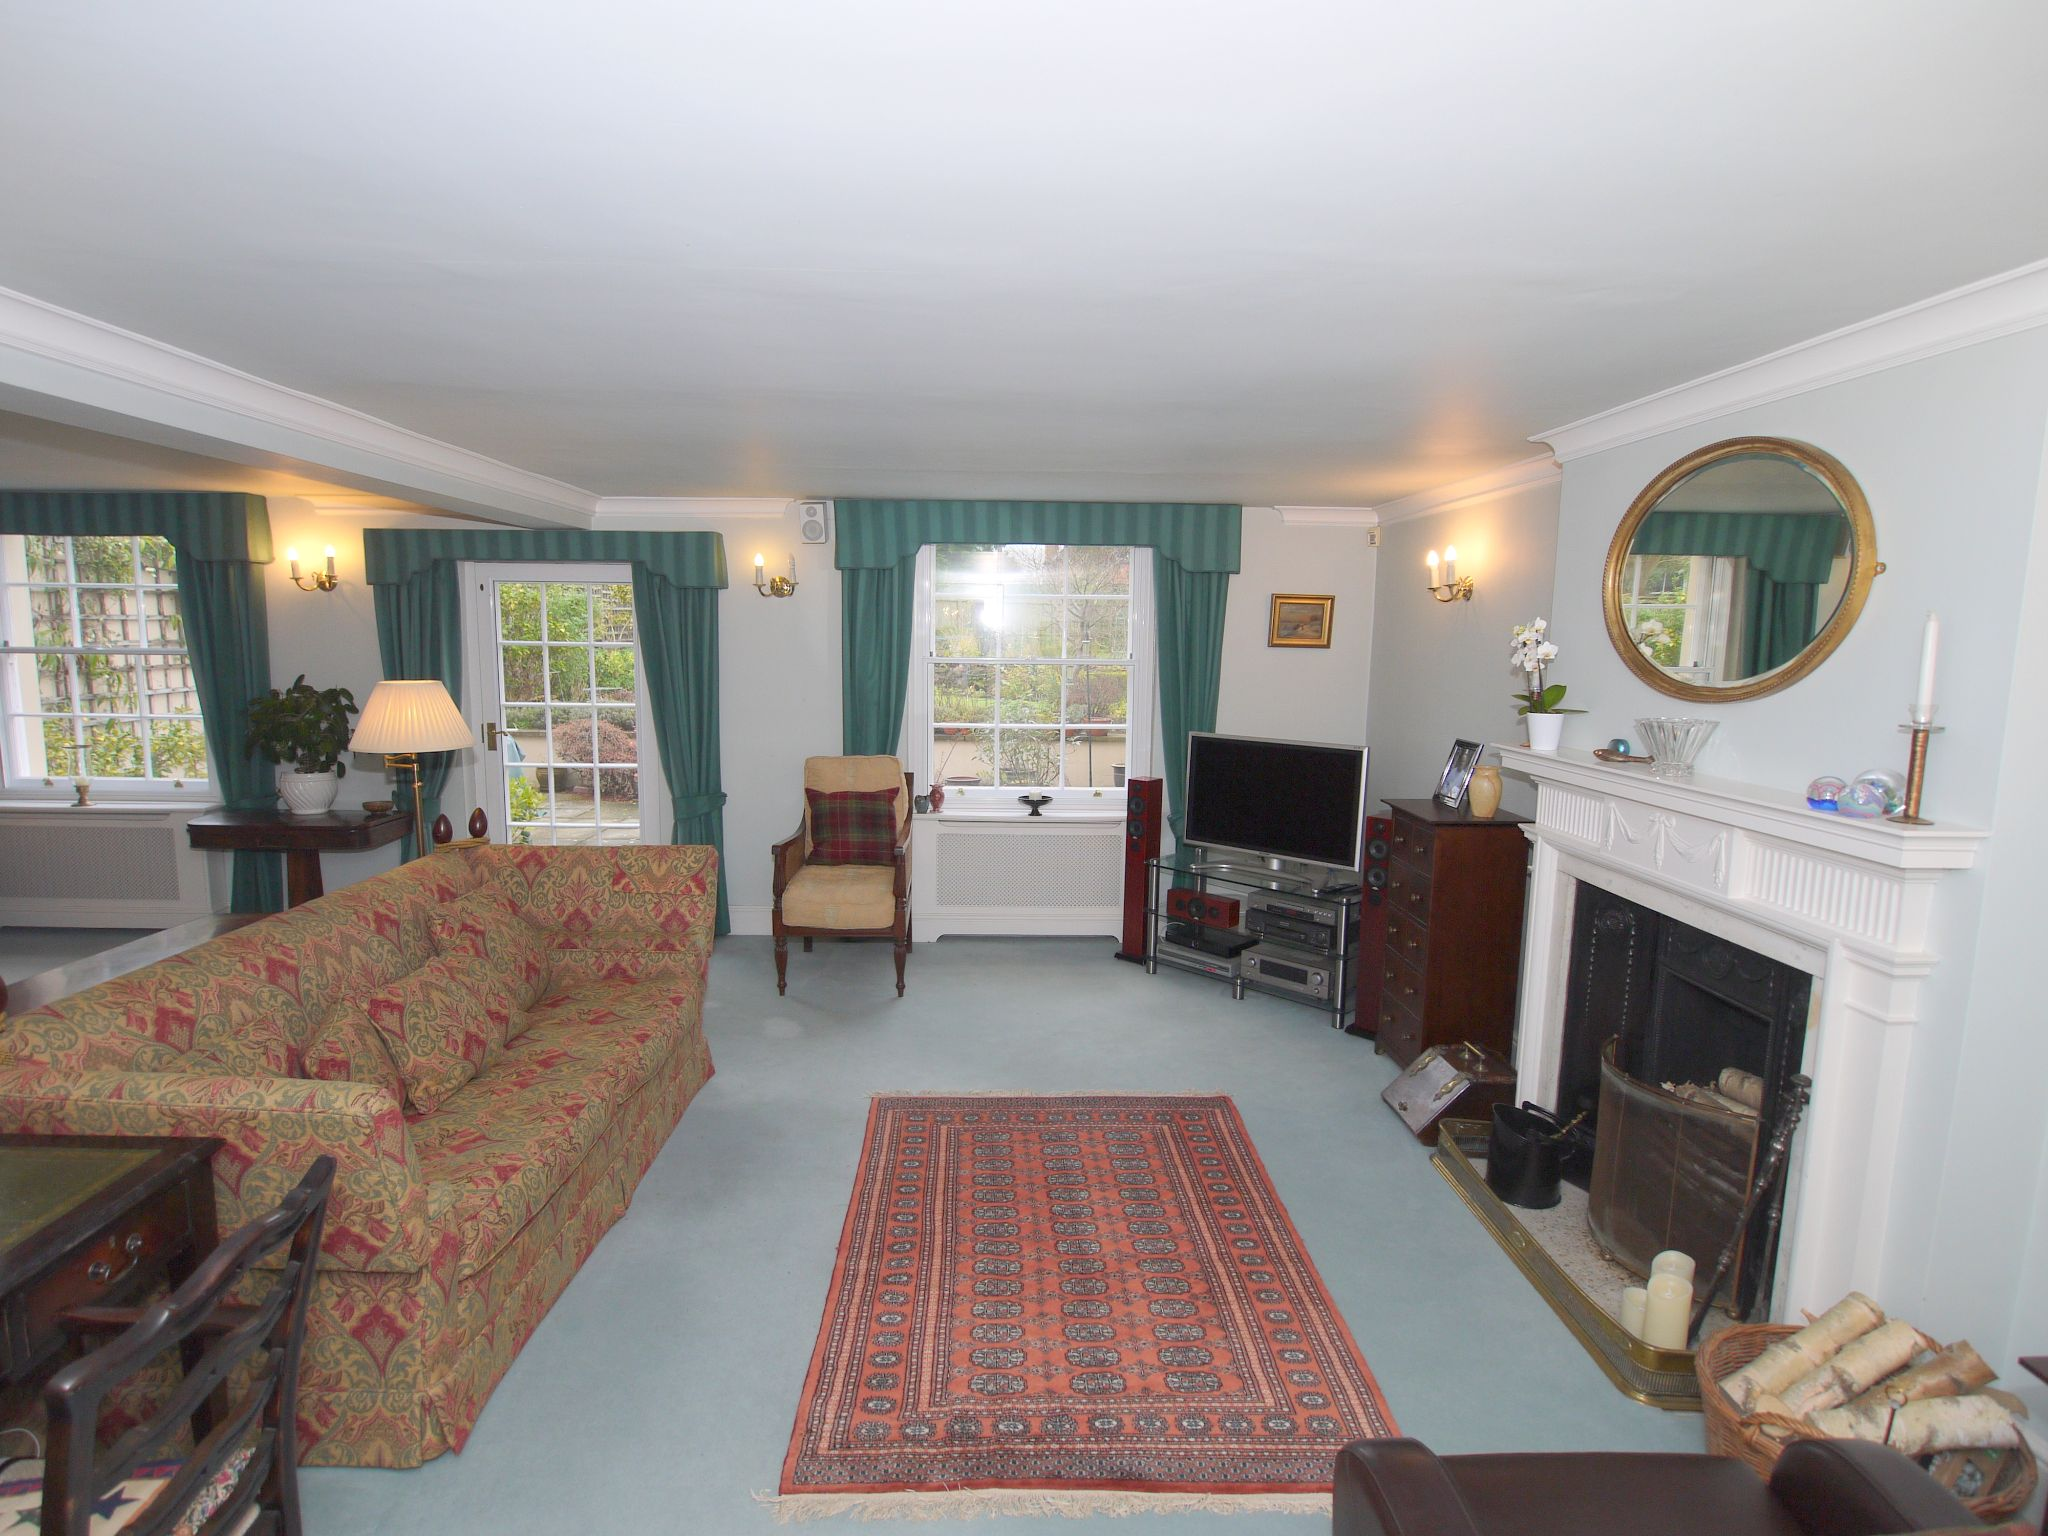 5 bedroom semi-detached house For Sale in Sundridge - Photograph 4